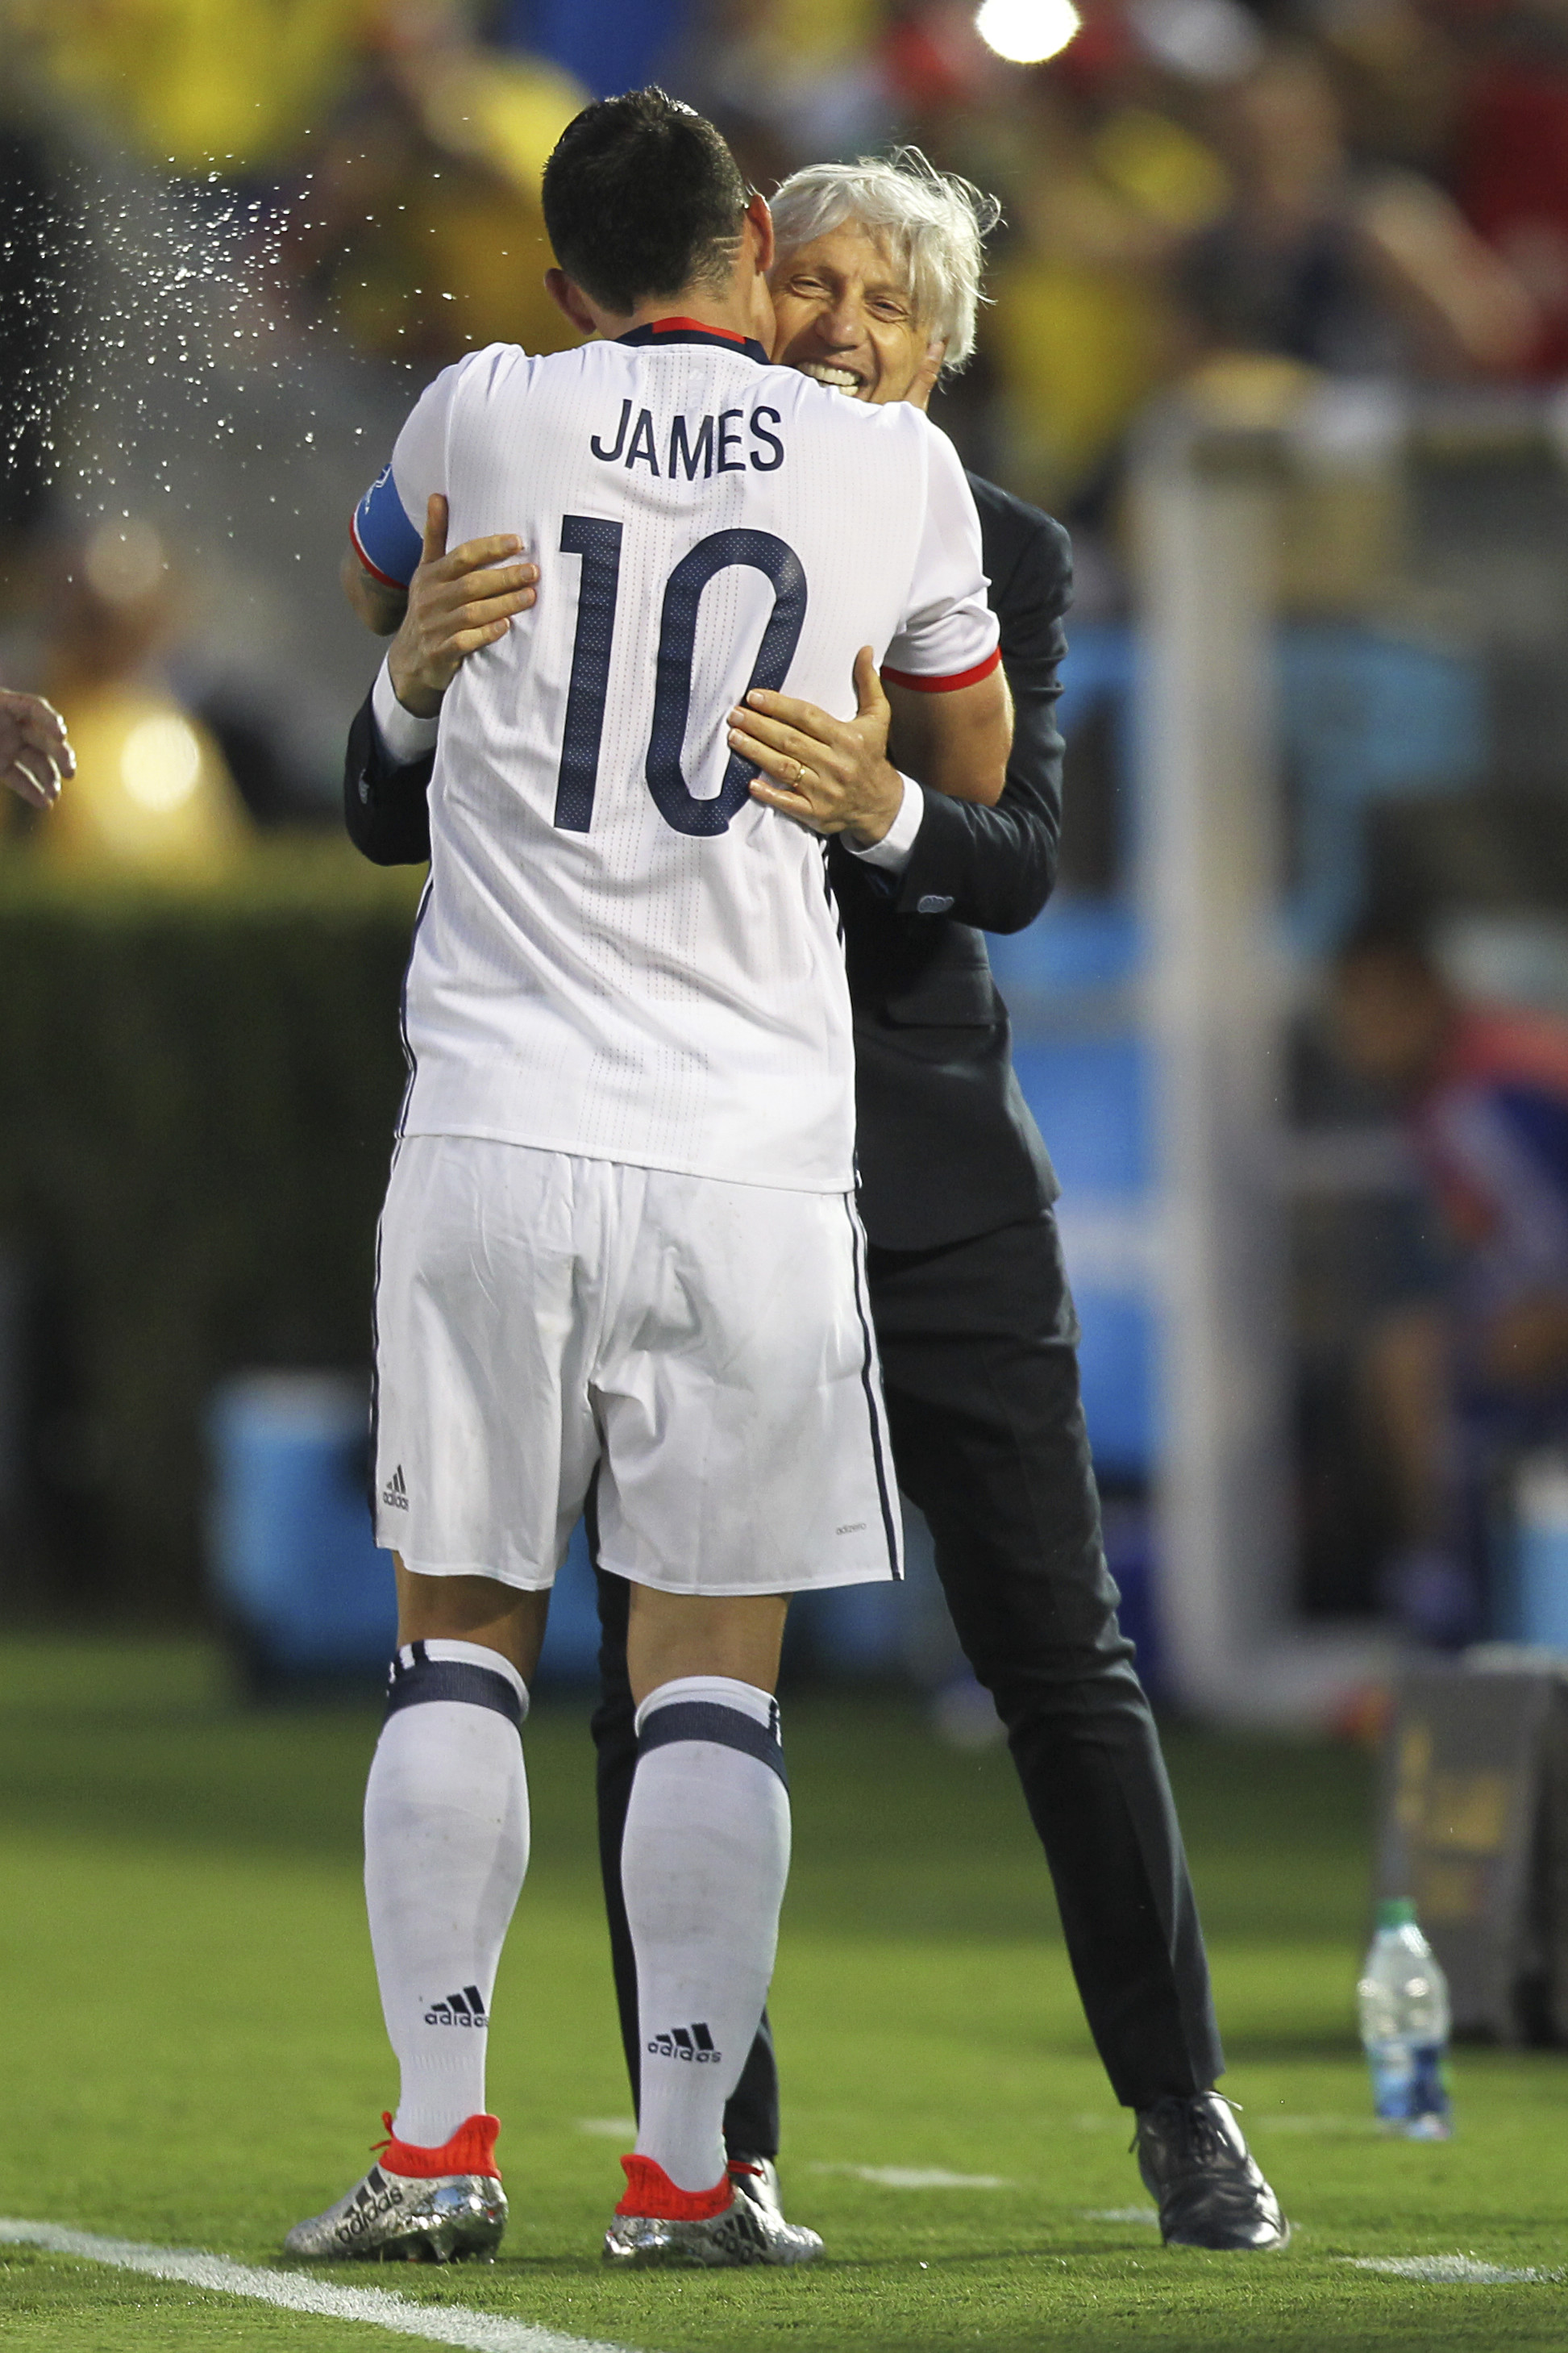 PASADENA, CALIFORNIA - JUNE 07: James Rodriguez of Colombia and his coach Jose Pekerman hug during a group A match between Colombia and Paraguay at Rose Bowl Stadium as part of Copa America Centenario US 2016 on June 07, 2016 in Pasadena, California, US. (Photo by Omar Vega/LatinContent/Getty Images)